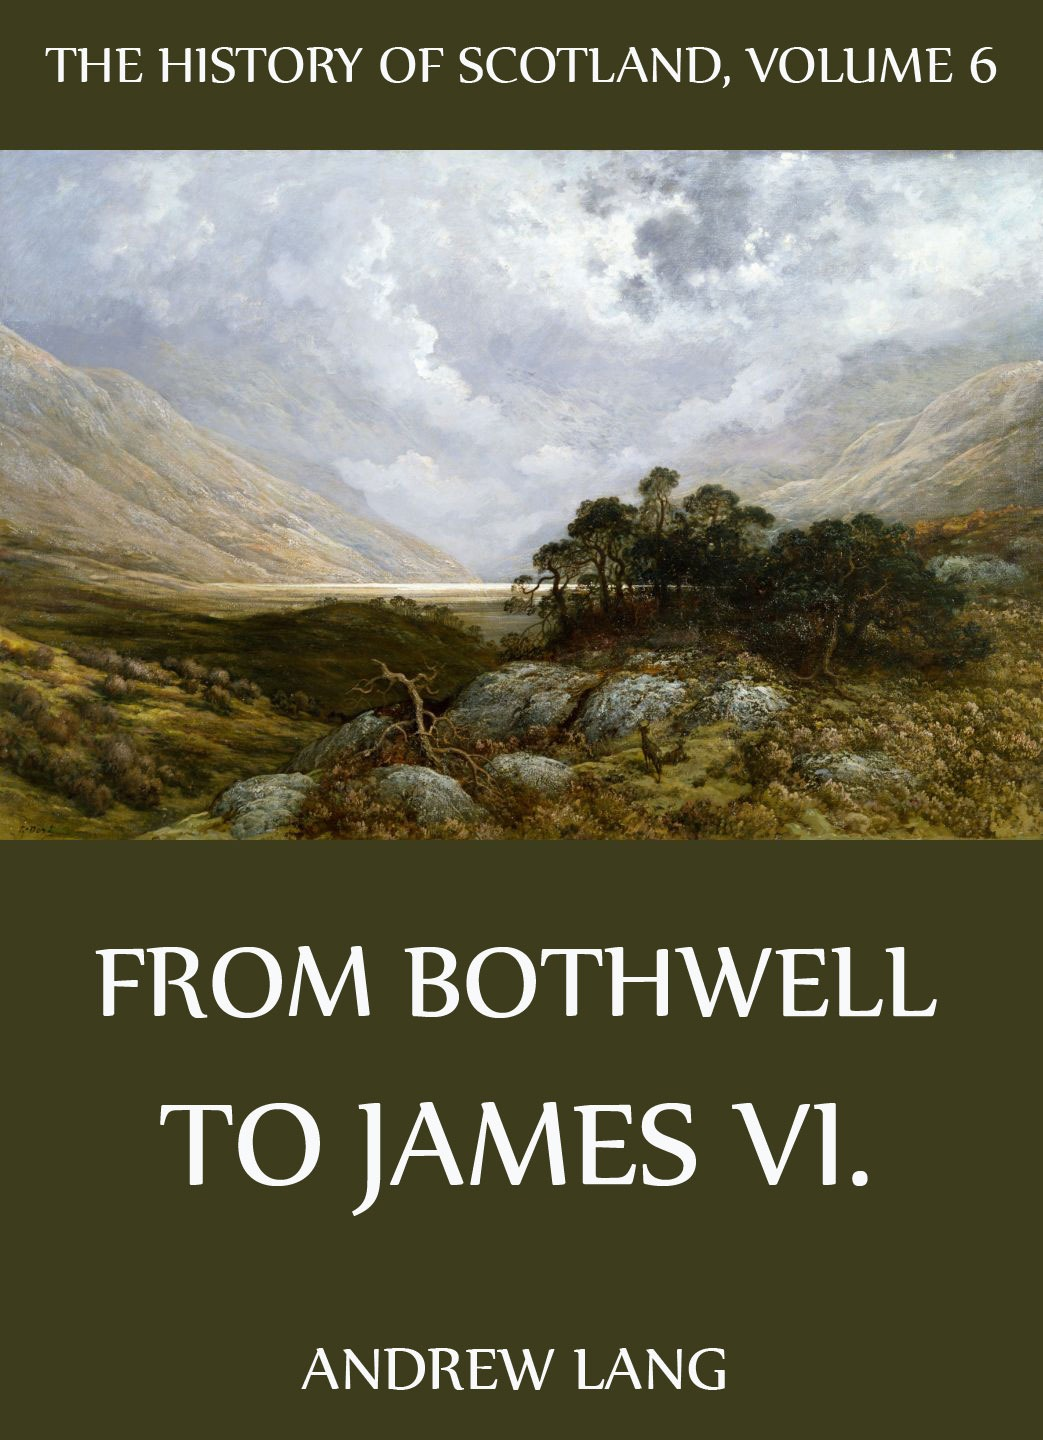 Andrew Lang The History Of Scotland - Volume 6: From Bothwell To James VI.